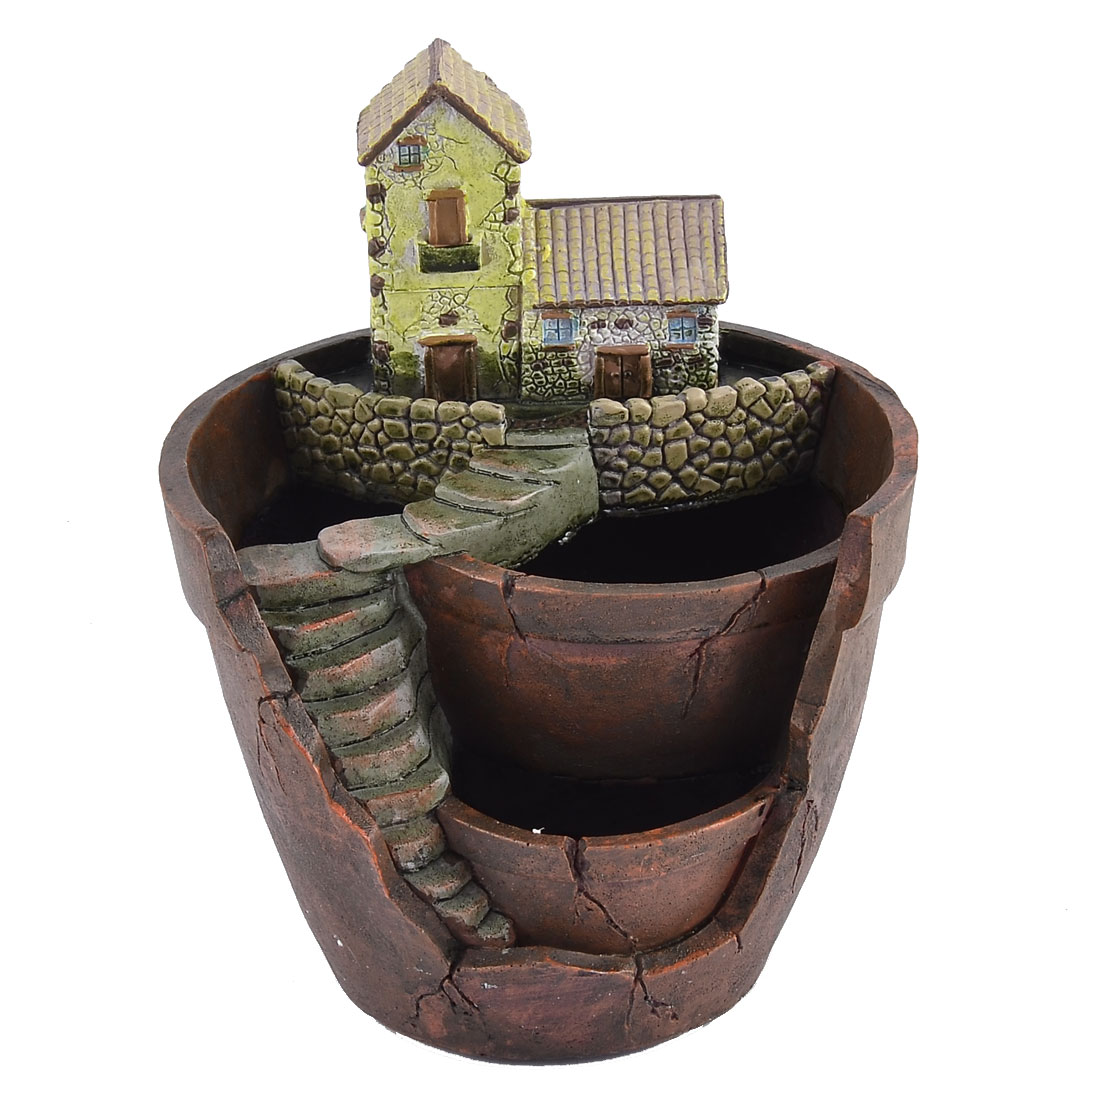 Unique Bargains Home Garden Office Resin House Shaped Aloes Cactus Plant Flower Pot Brown Green